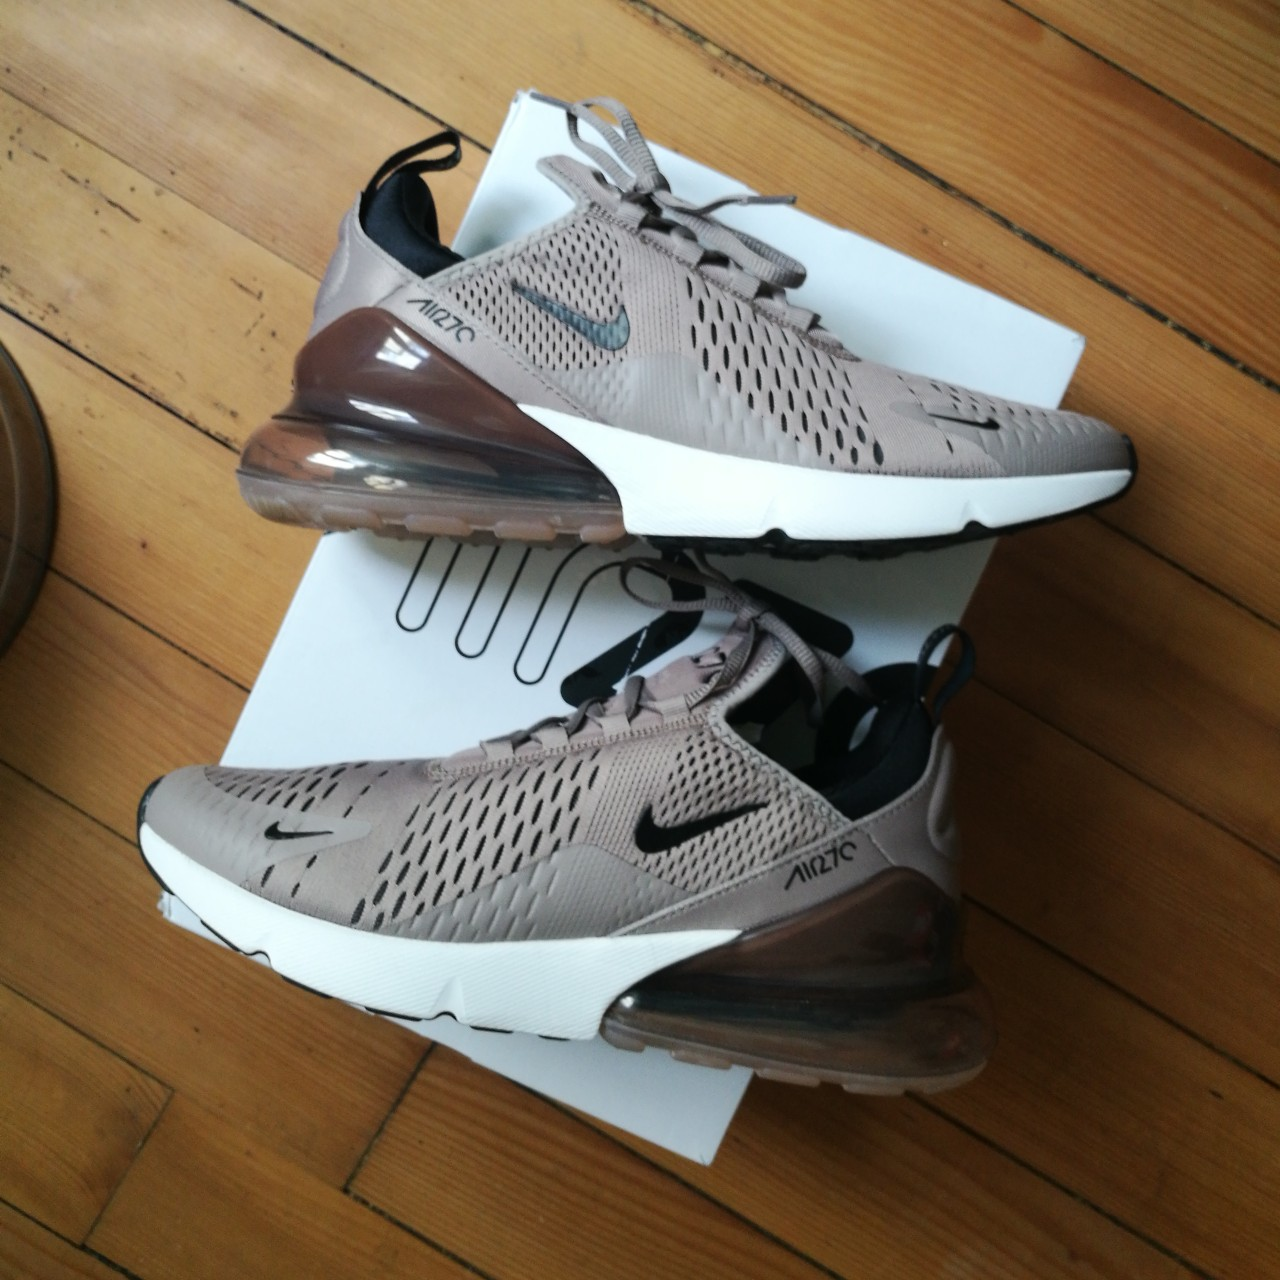 premium selection 4870d a1ece Air Max 270 Footlocker Exclusive VNDS used just for... - Depop